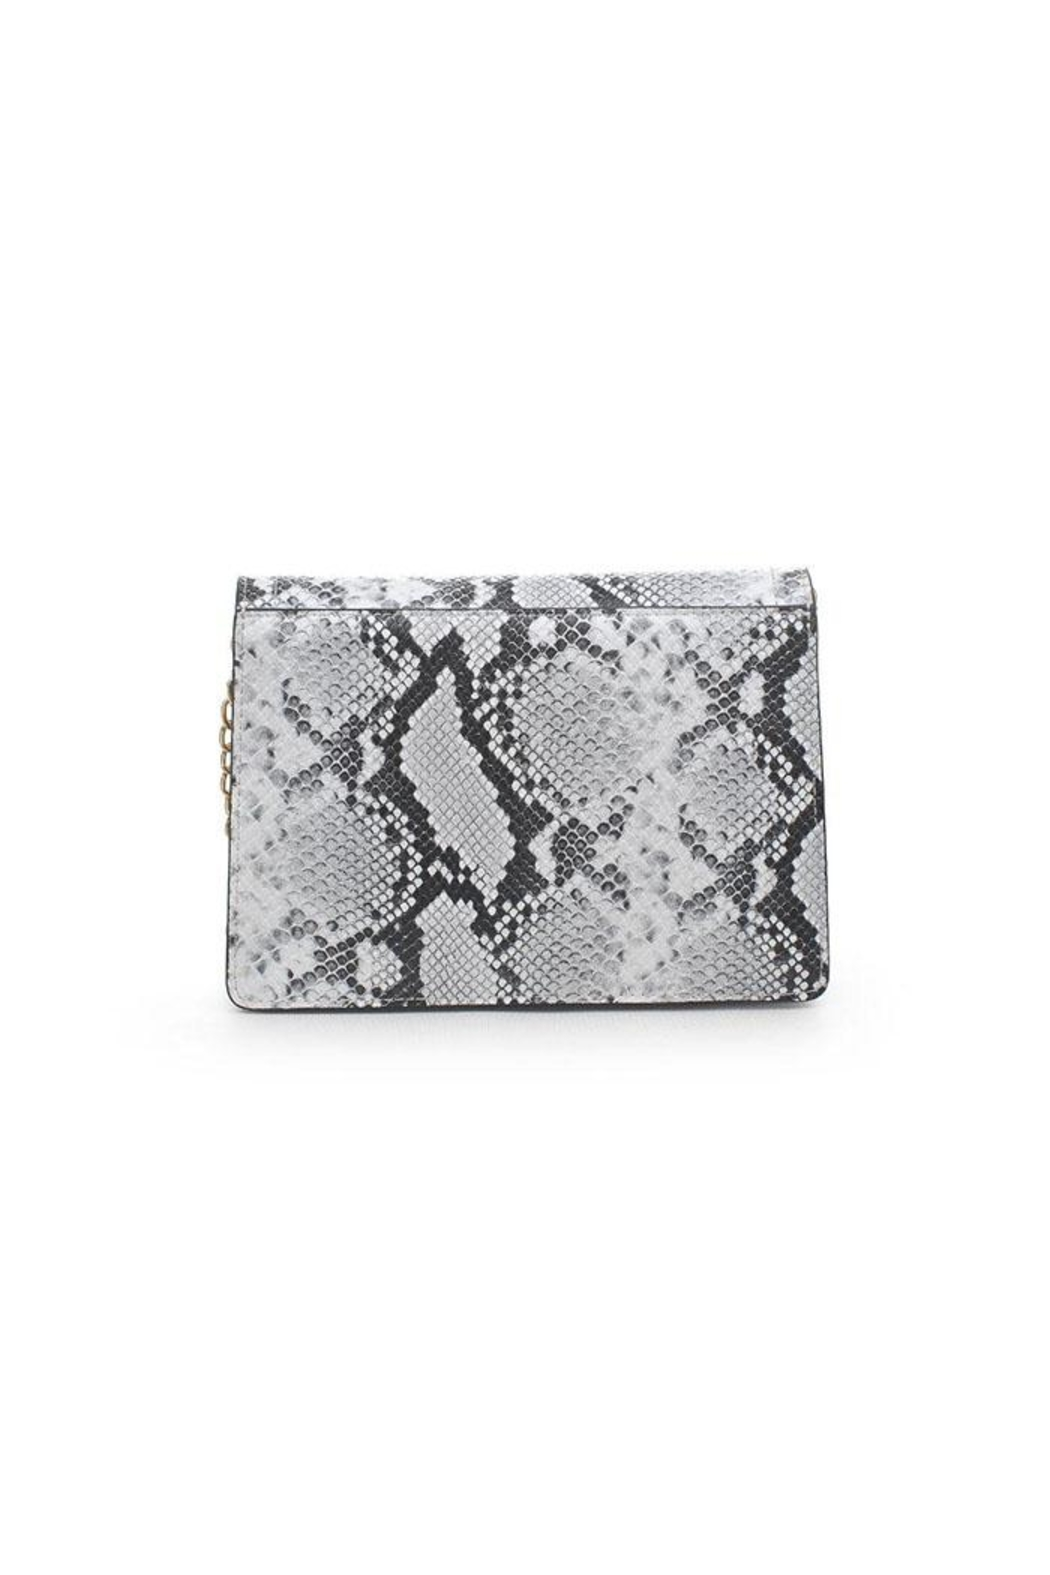 Urban Expressions Snake Print Crossbody - Front Full Image